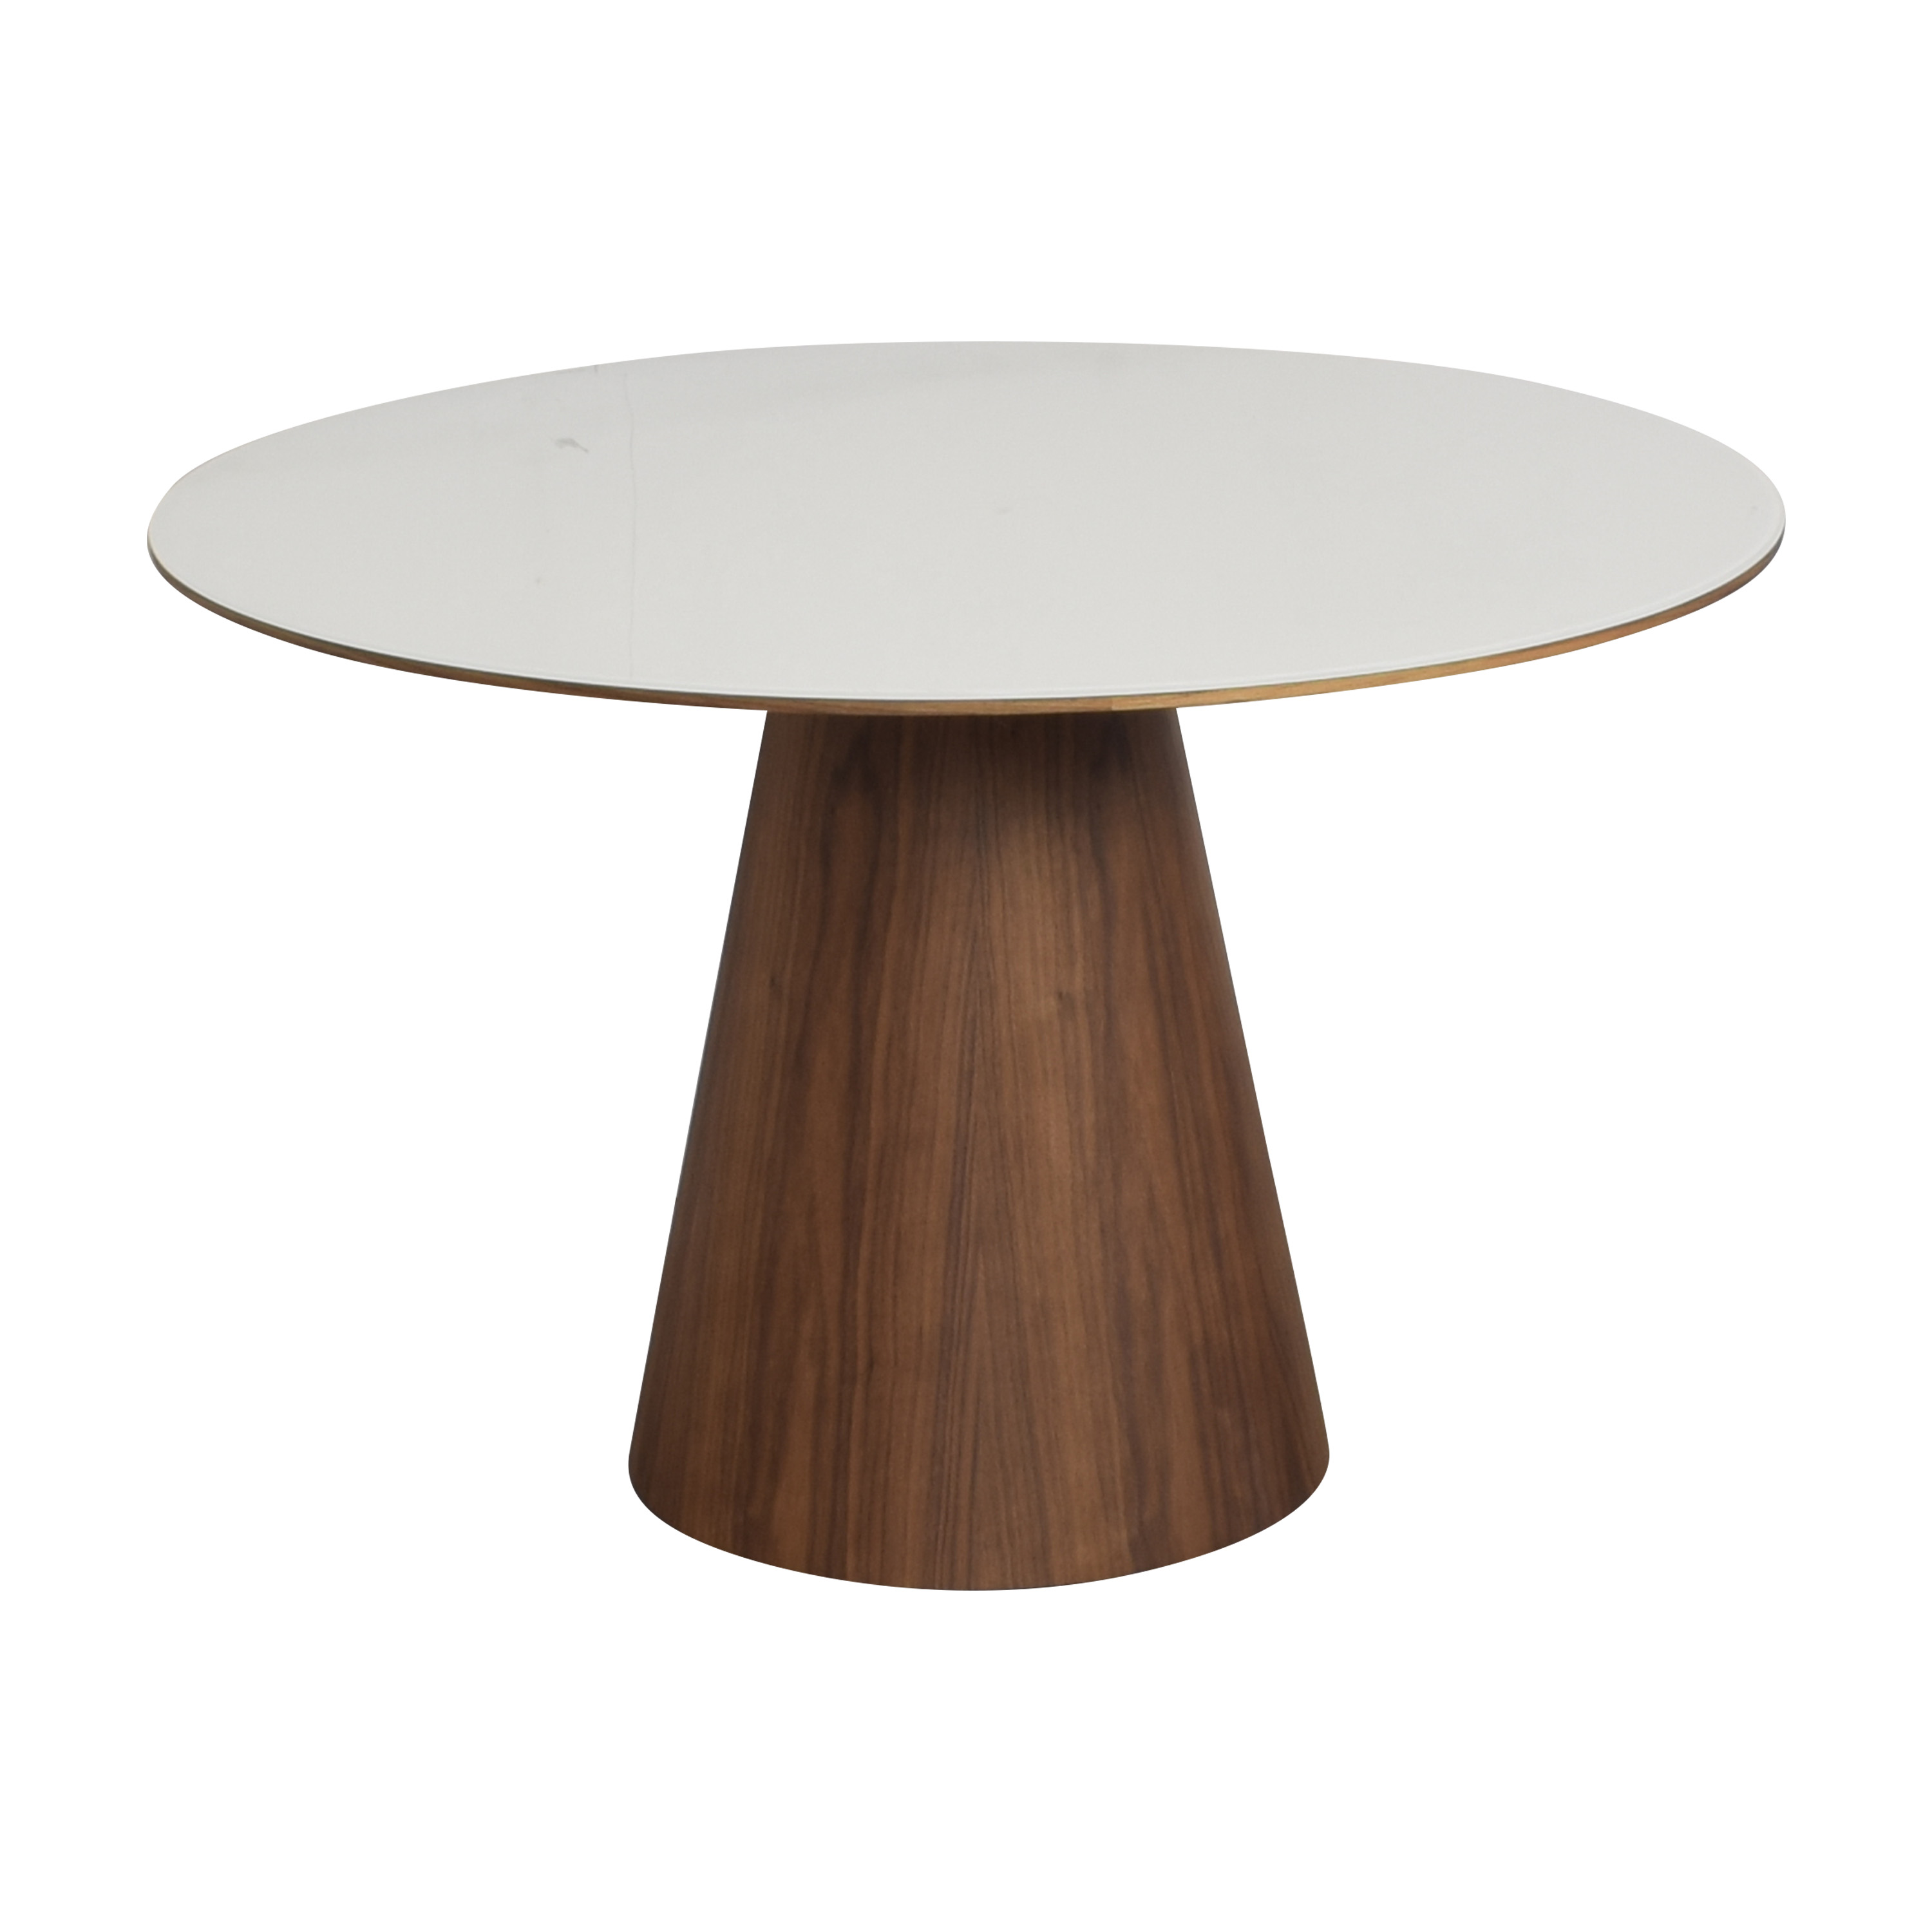 Rove Concepts Rove Concepts Winston Dining Table brown & white